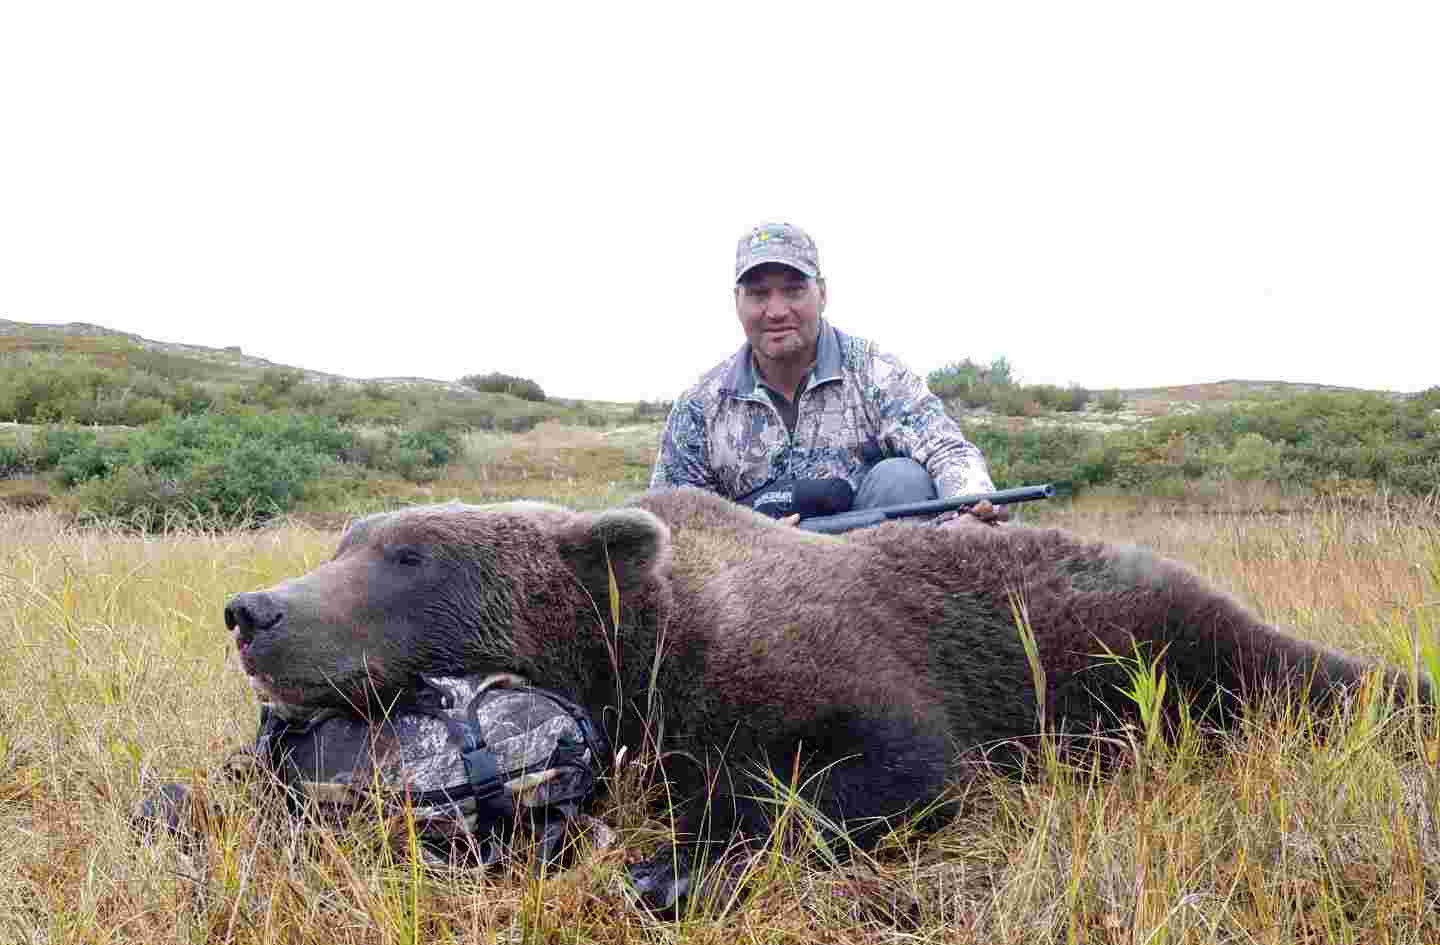 Anothe great Brown Bear taken this fall